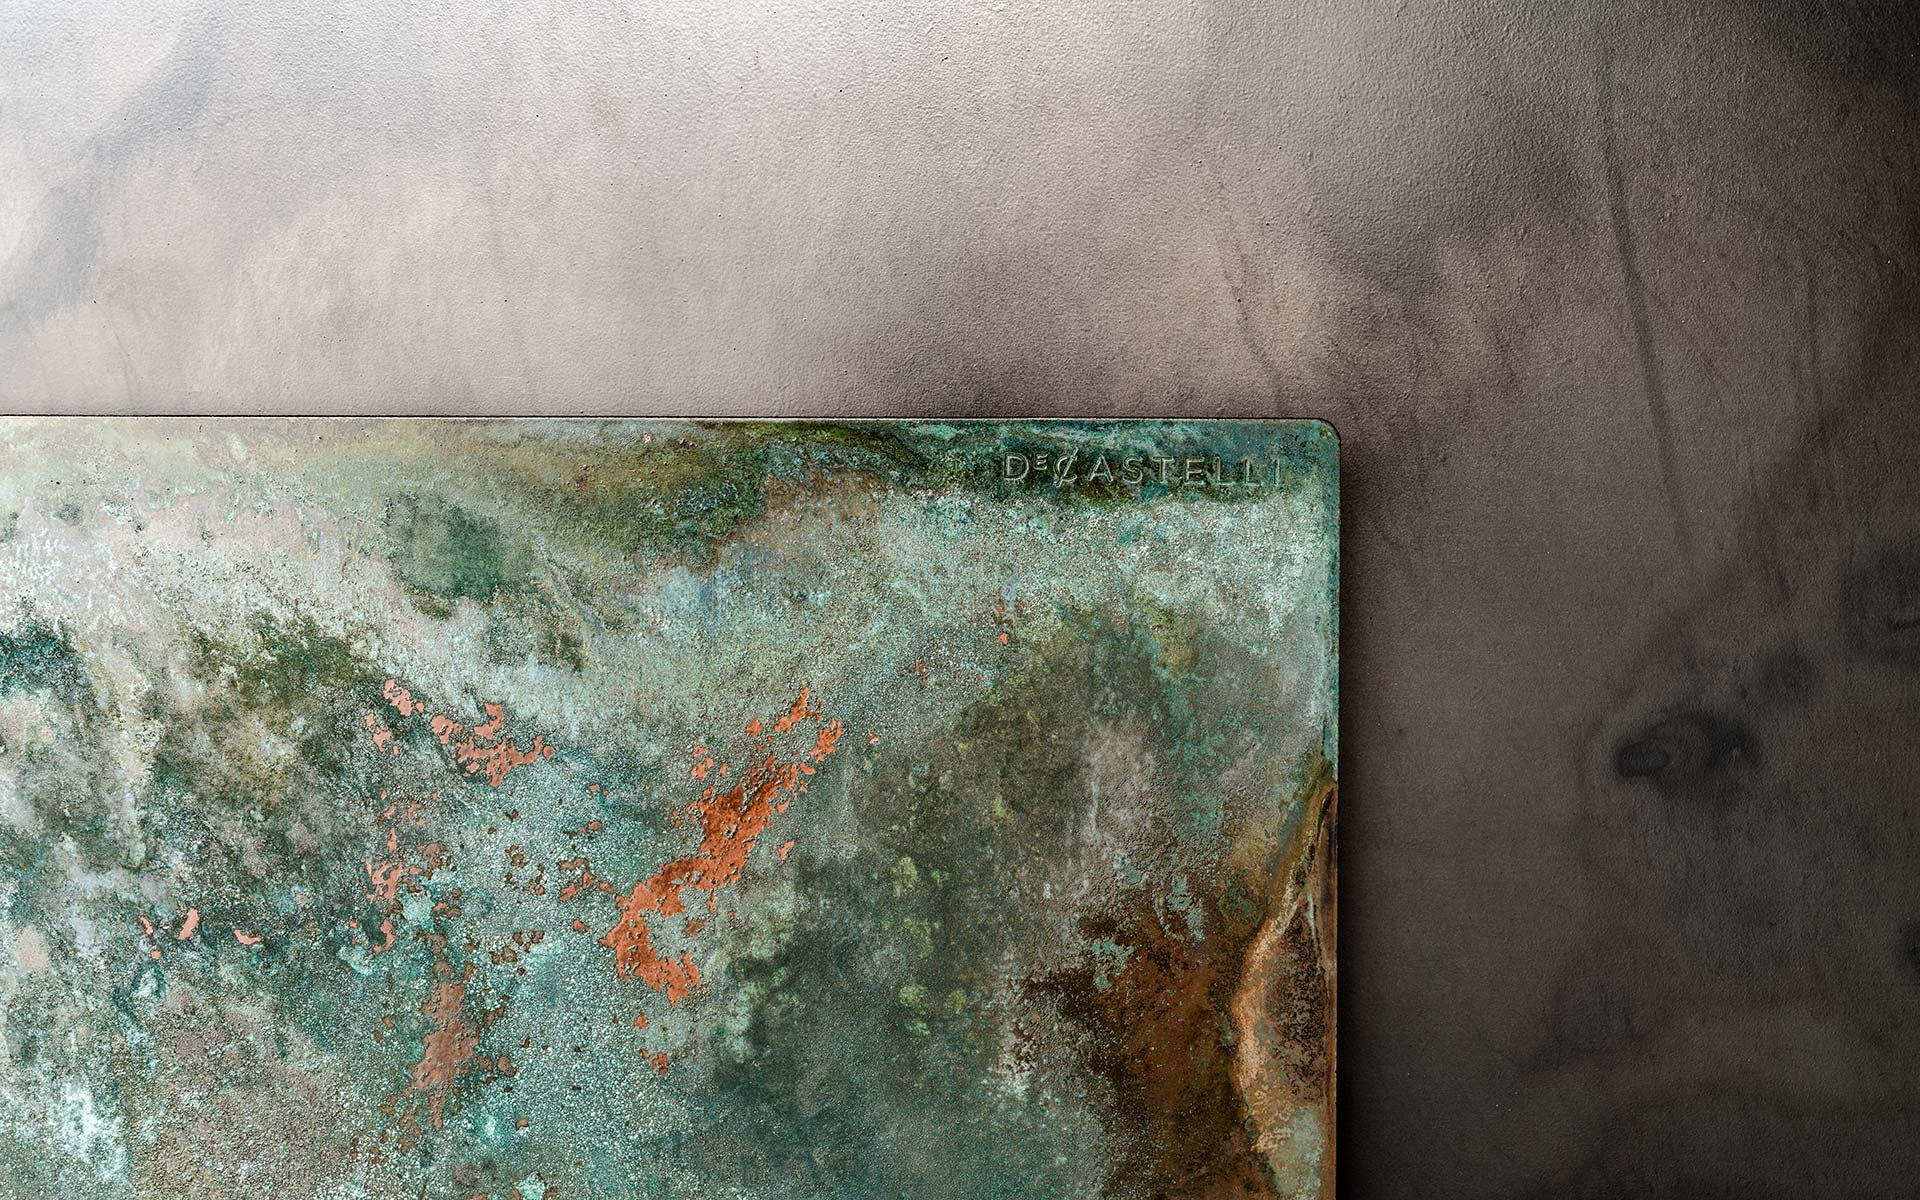 a close up of design metals and textures